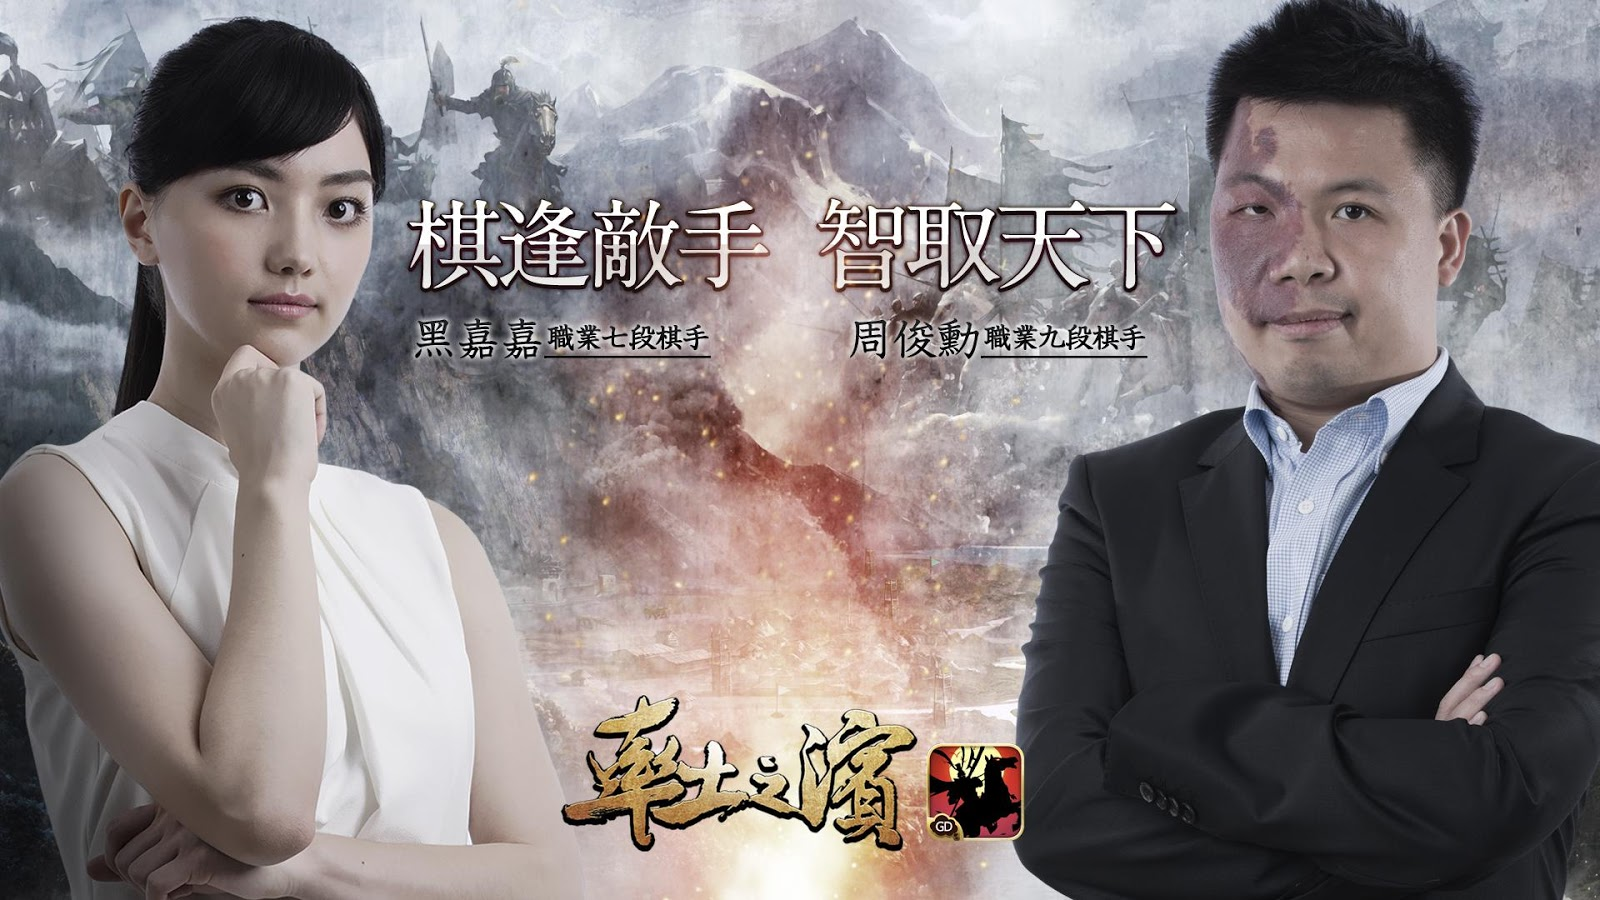 率土之濱-棋逢敵手 智取天下 Screenshot 6